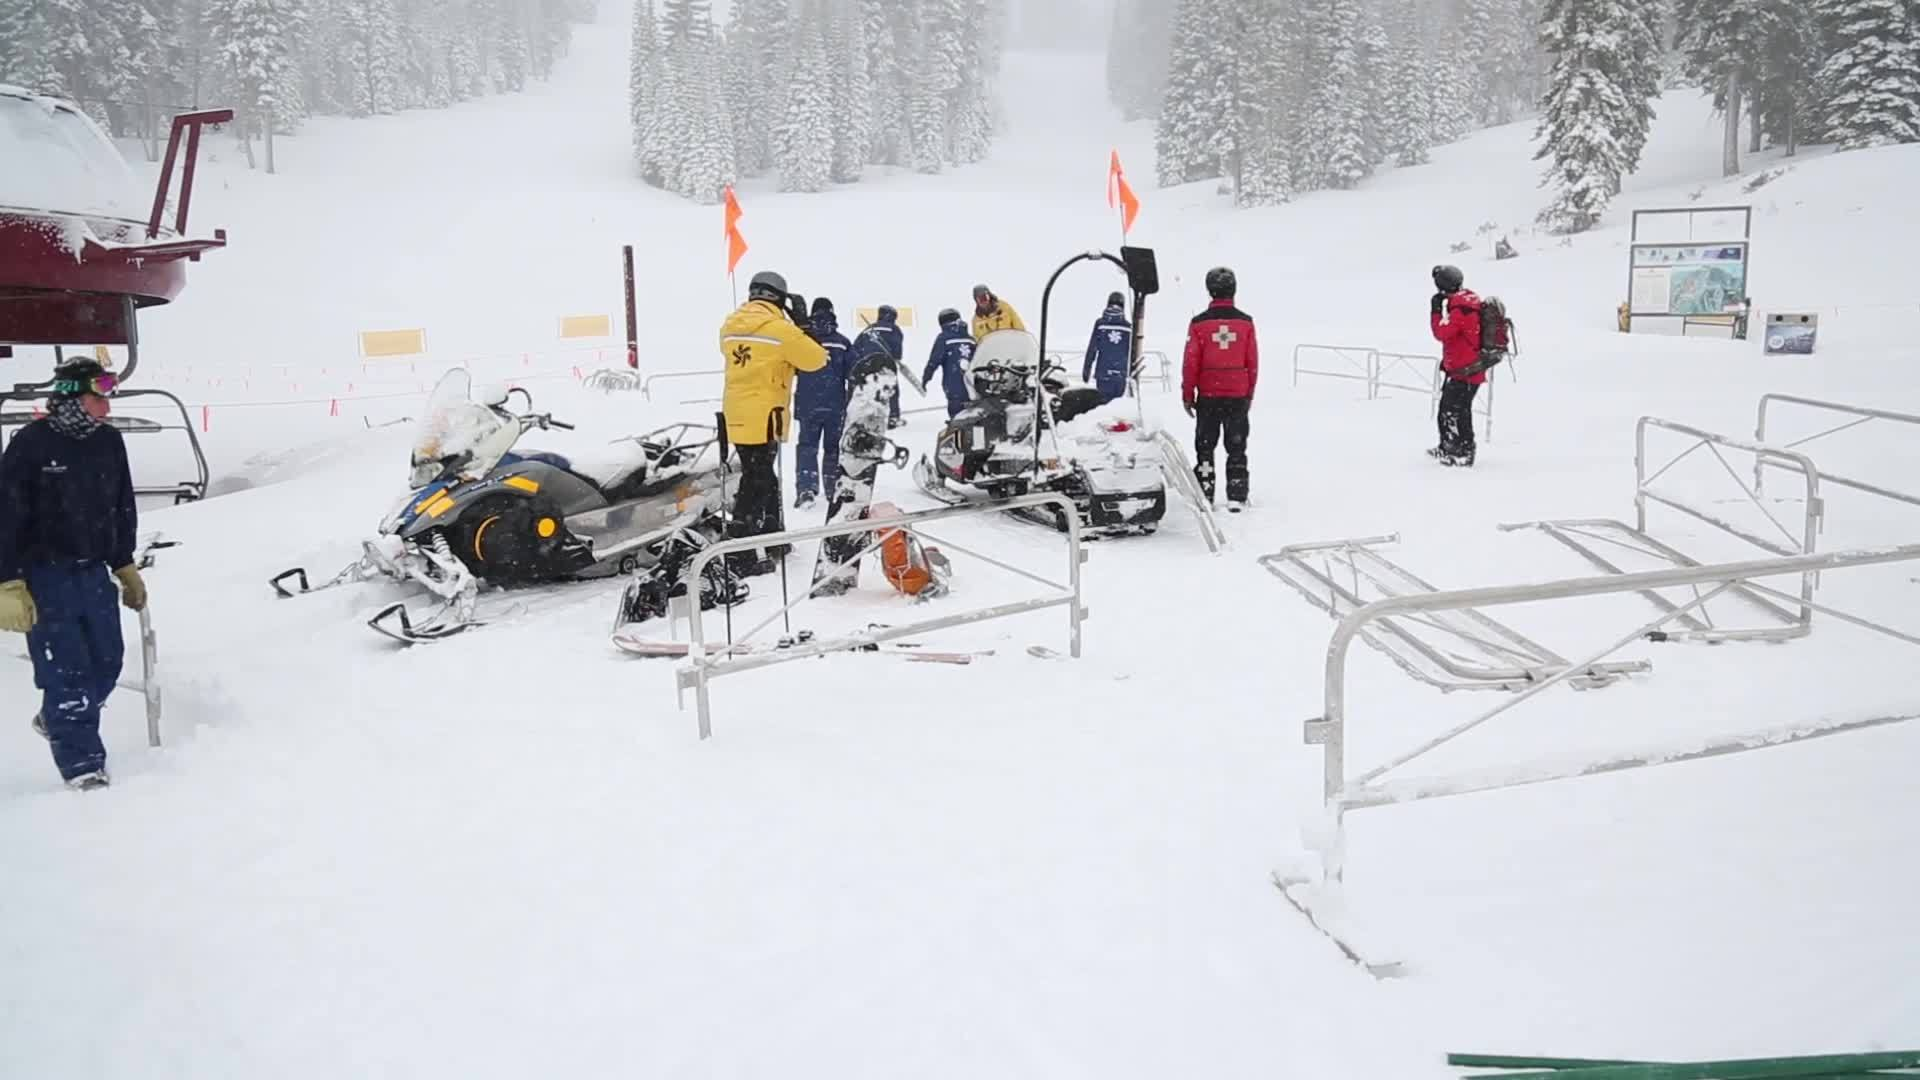 Weekend storm dumps 3 5 feet of fresh snow at Lake Tahoe resorts